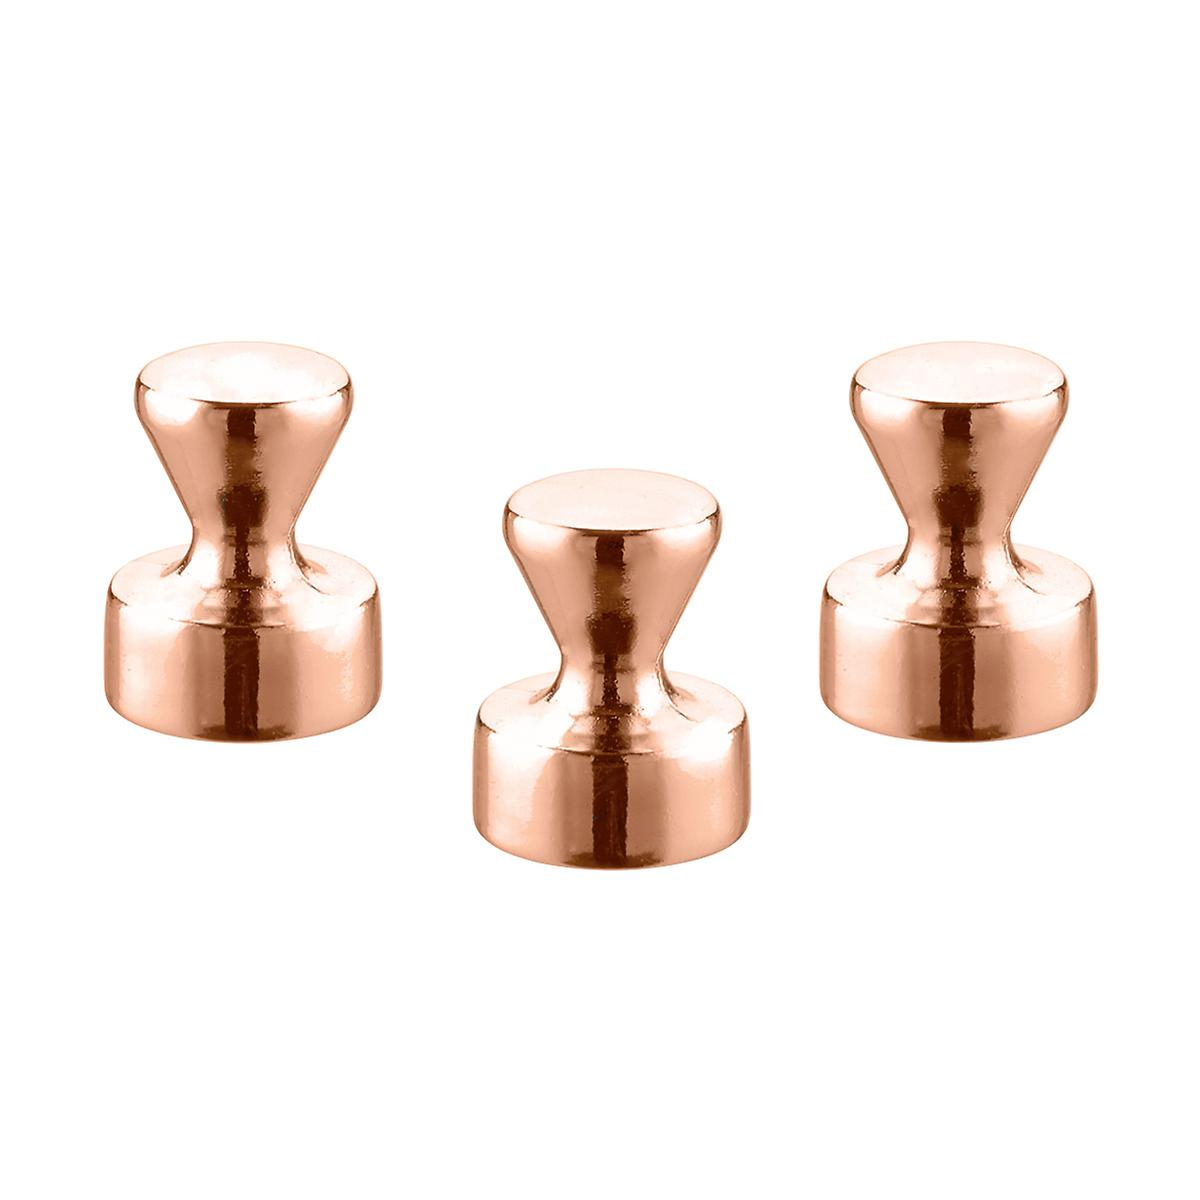 Three by Three Large Copper Knob Magnets